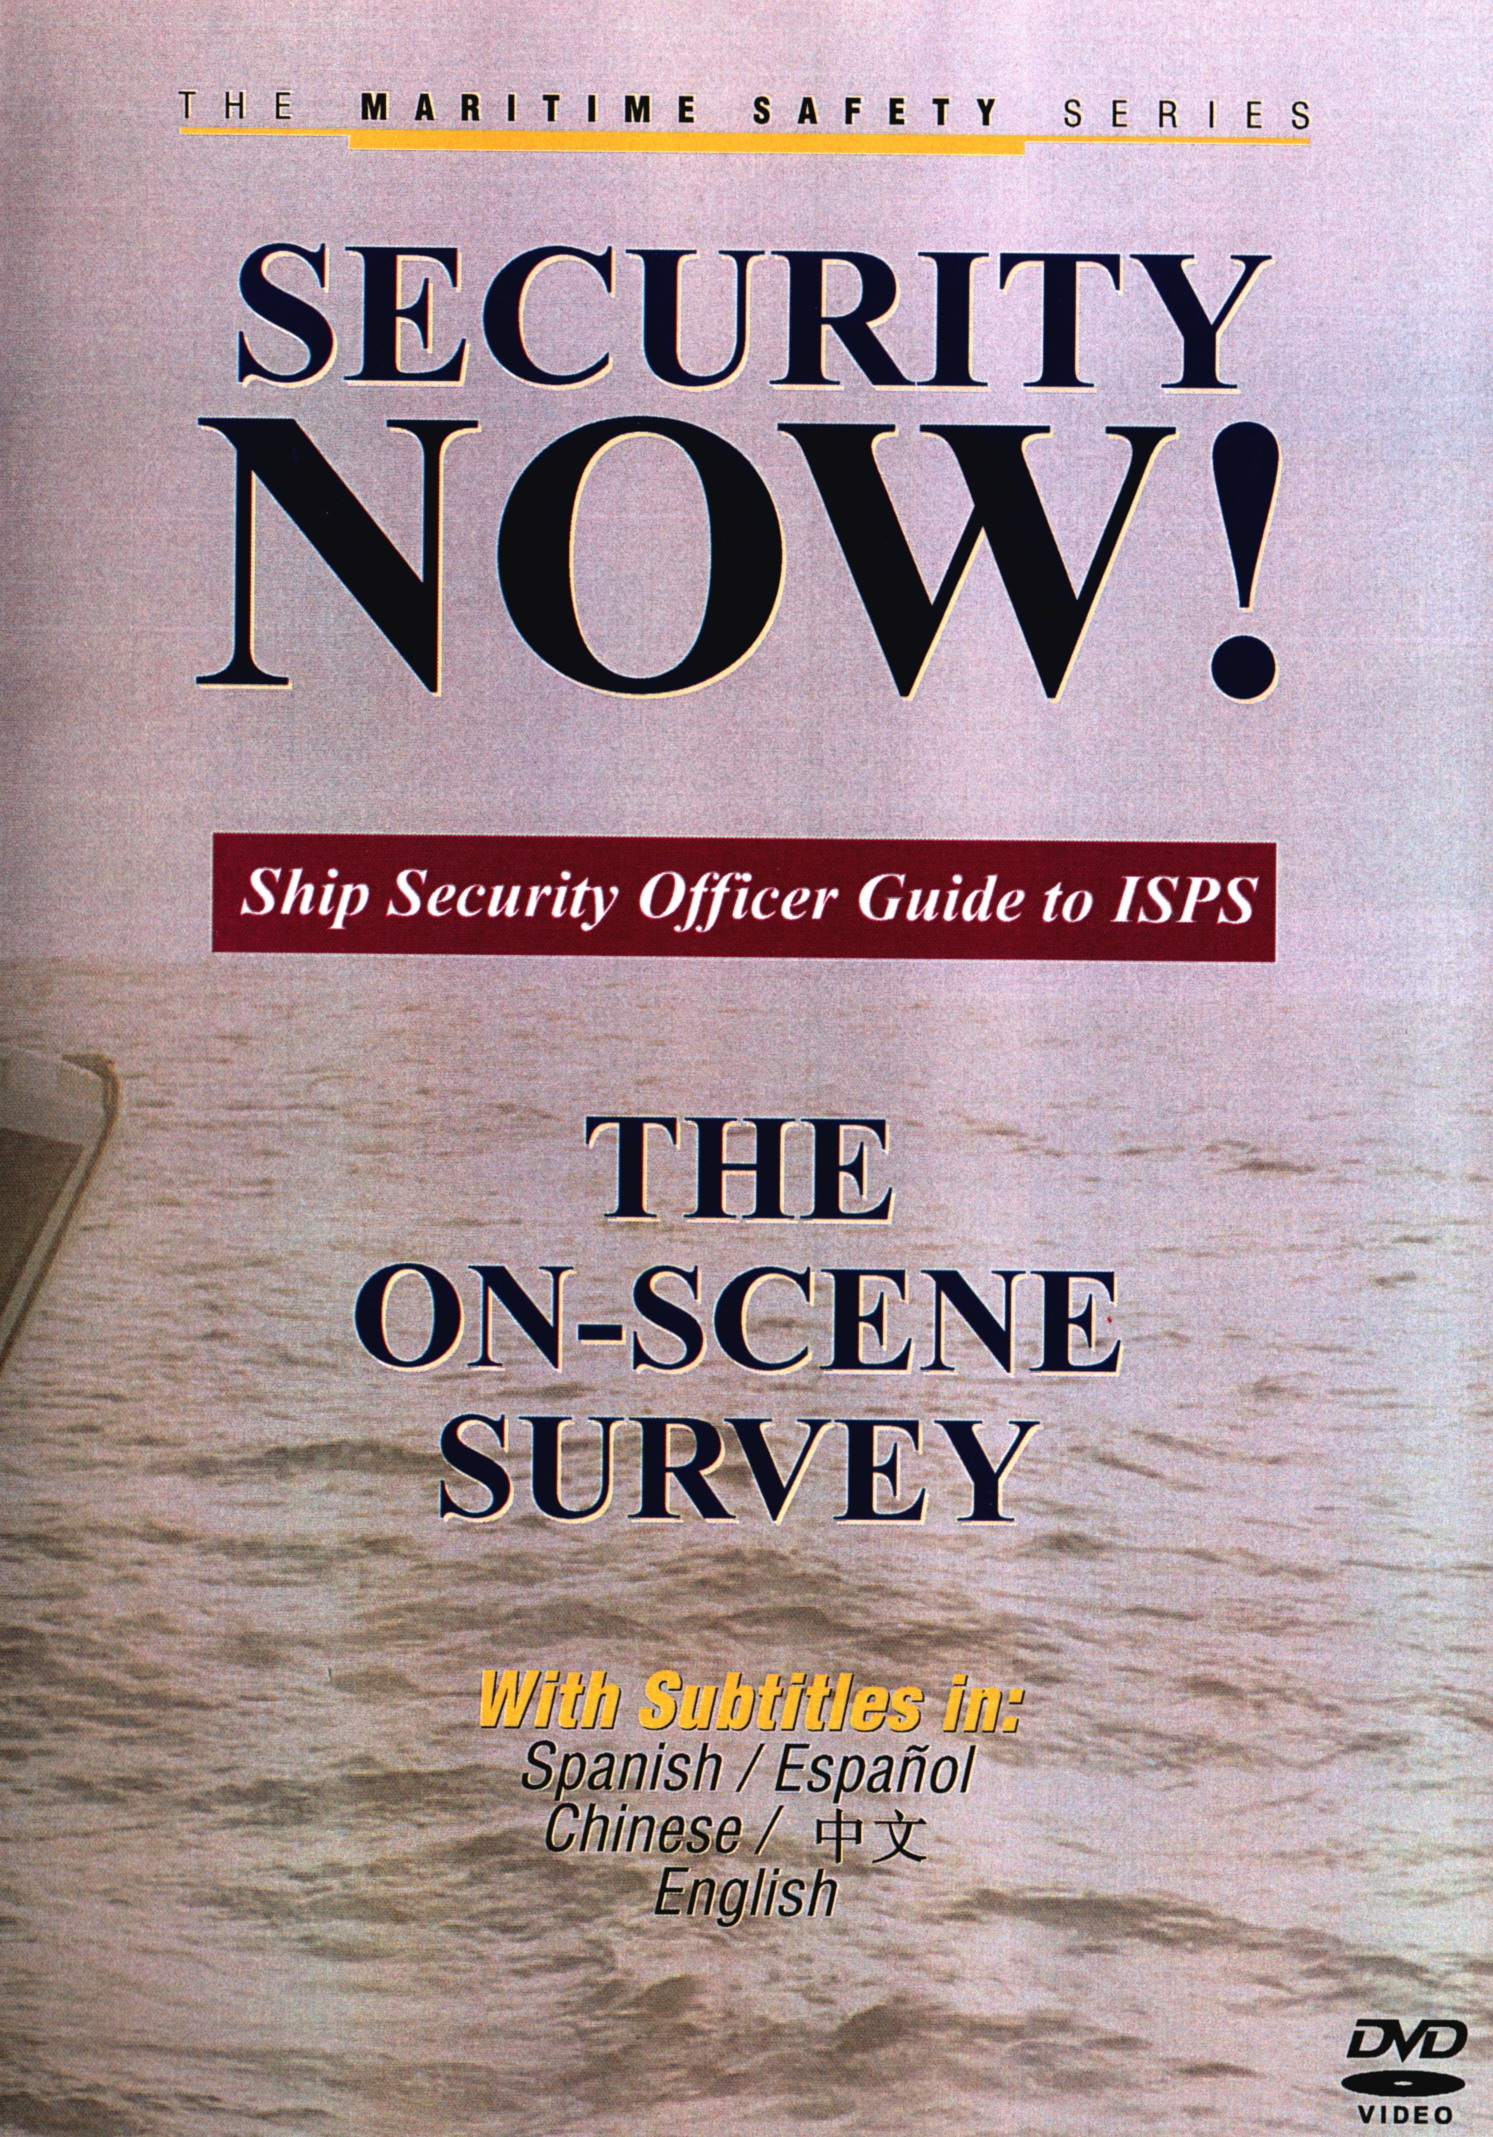 Security NOW! The On-Scene Survey